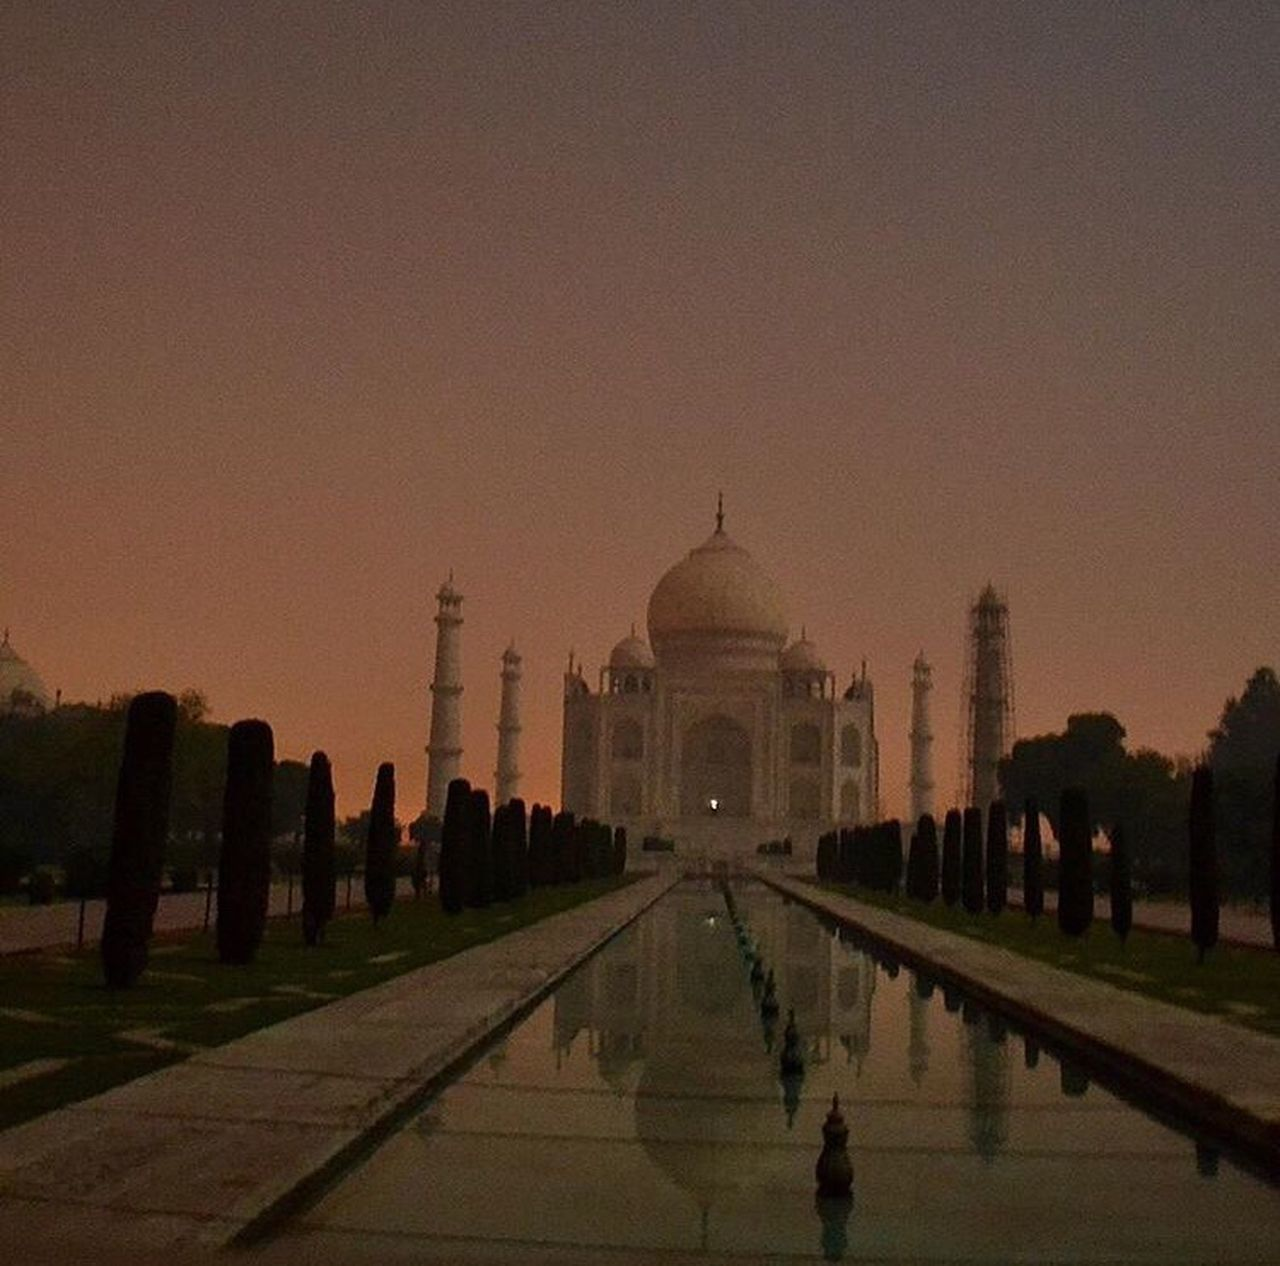 Reflecting Pool Dome Travel Destinations Architecture Memorial Built Structure Large Group Of People Outdoors The Great Outdoors - 2017 EyeEm Awards Sky Building Exterior Taj Mahal Tajmahal India Agra Architecture_collection Arcitecturephotography Architecturelovers Night ISO DSLR DSLR Photography